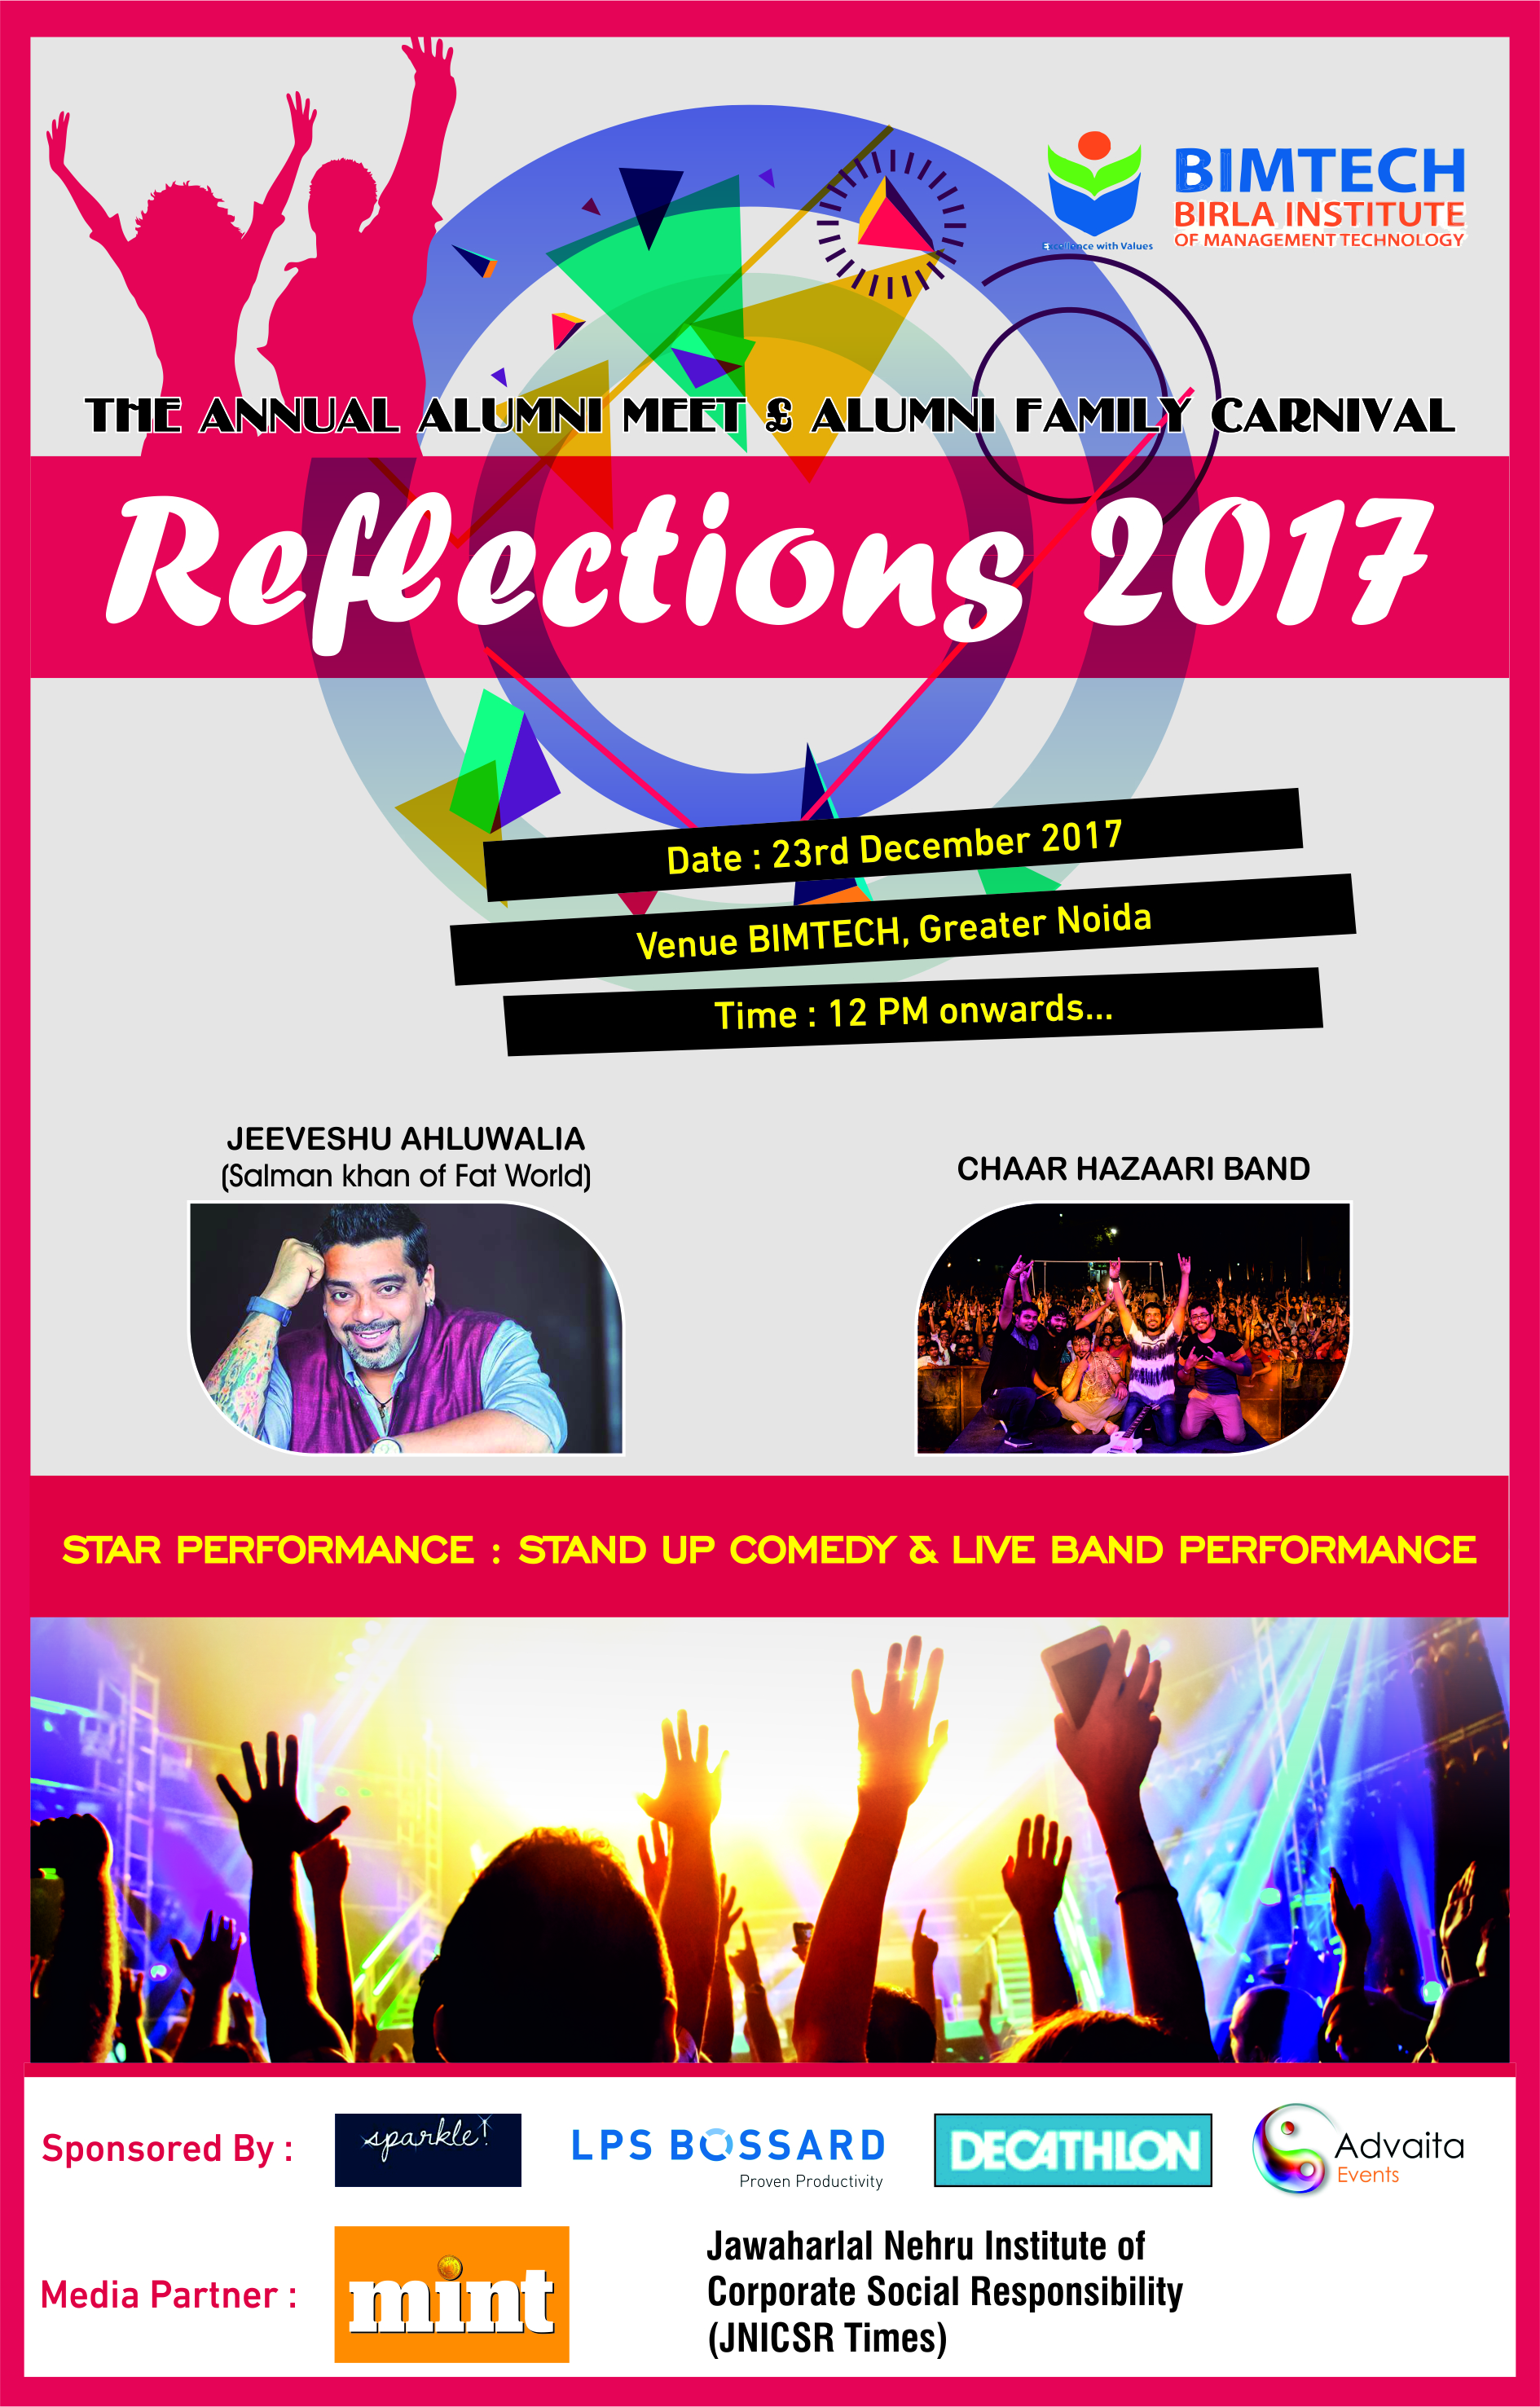 Birla Institute of Management Technology will host the super special Annual Alumni meet and Carnival, 'Reflections 2017' on December 23, 2017.